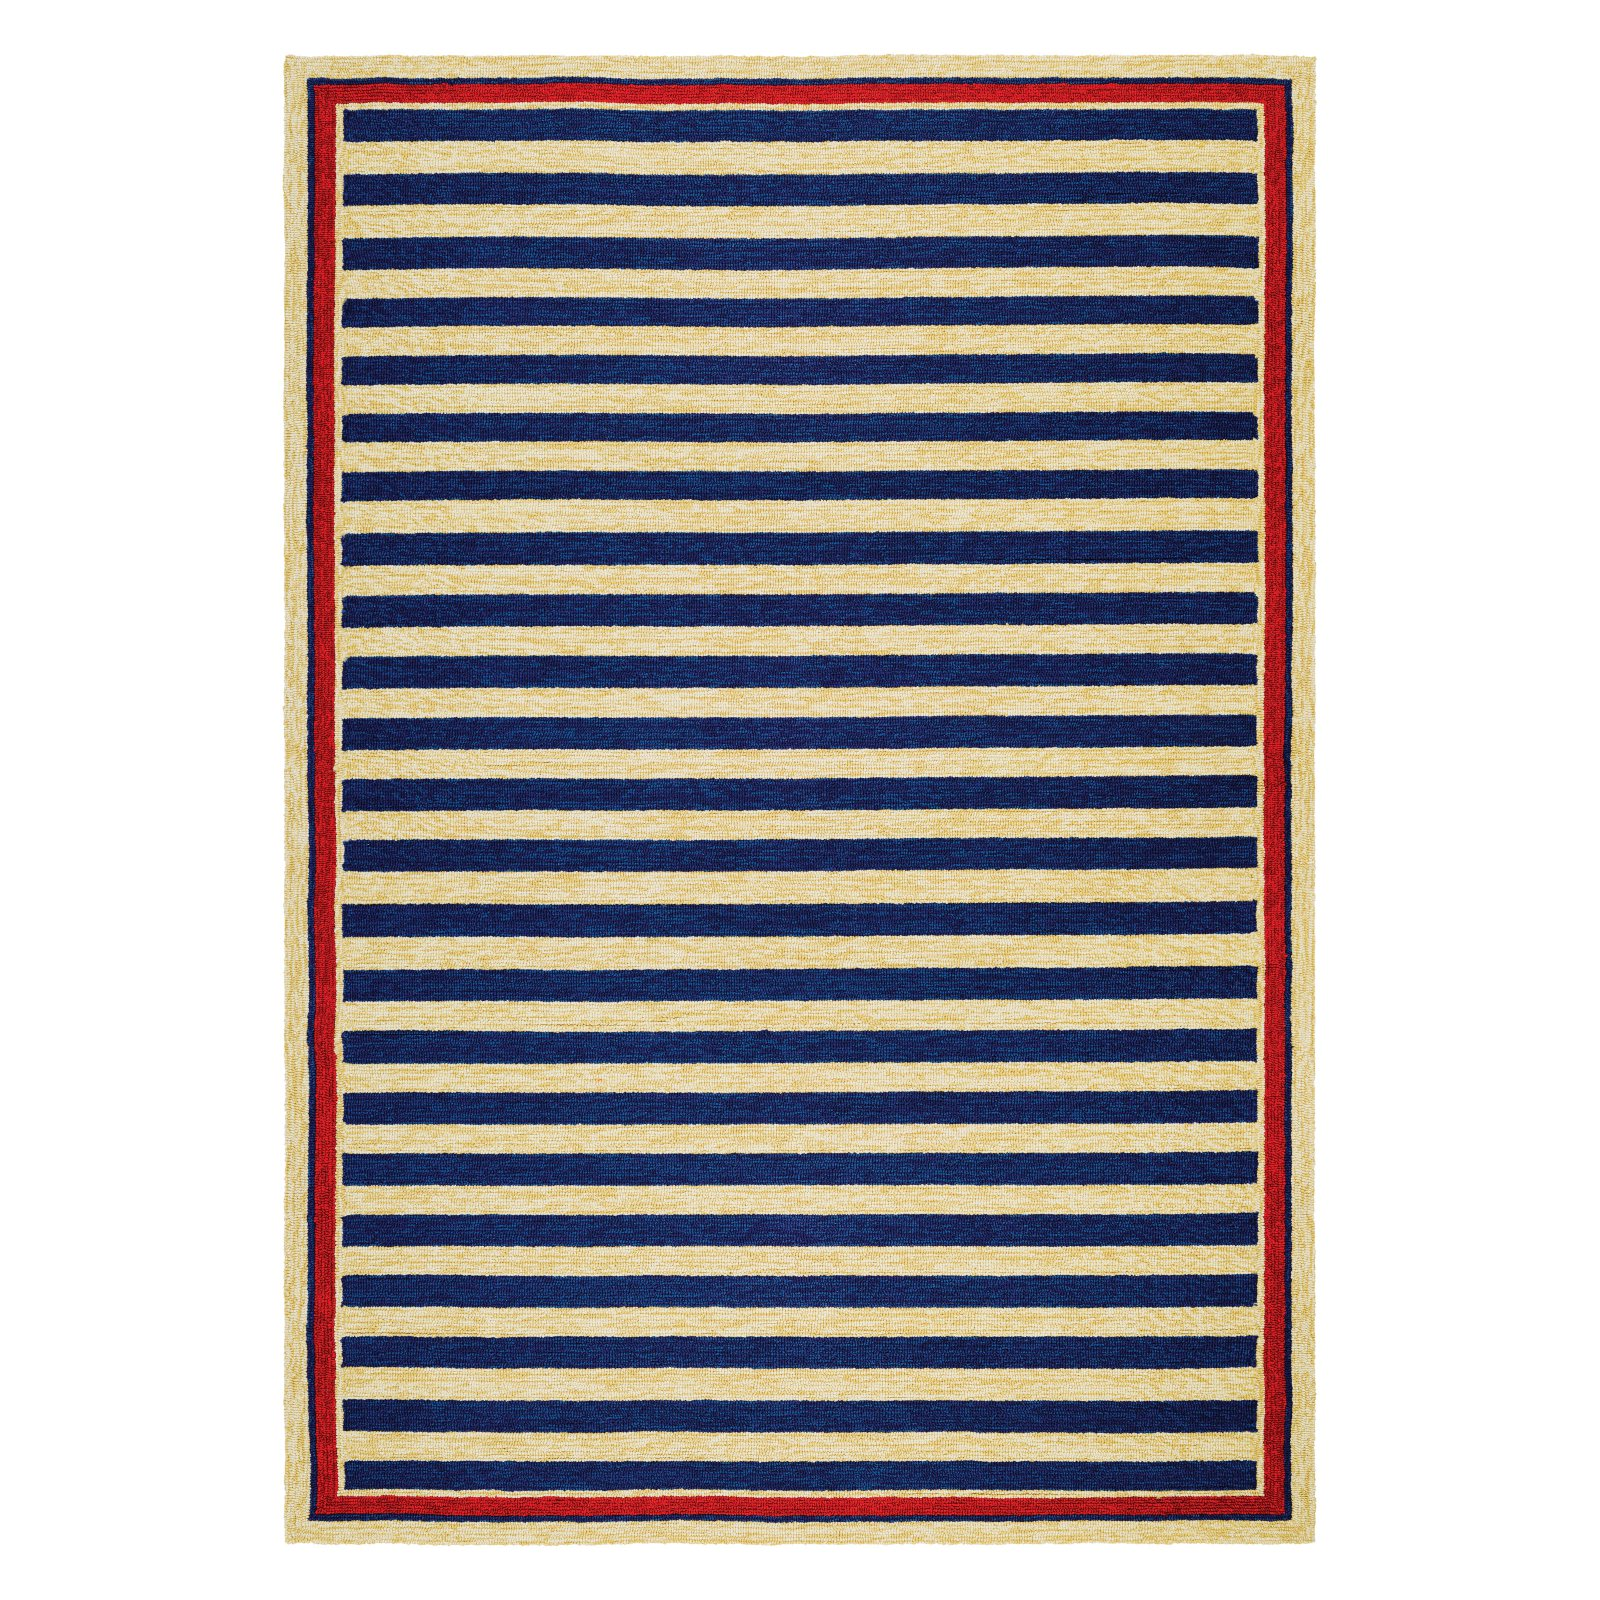 Couristan Americana Striped Indoor/Outdoor Area Rug